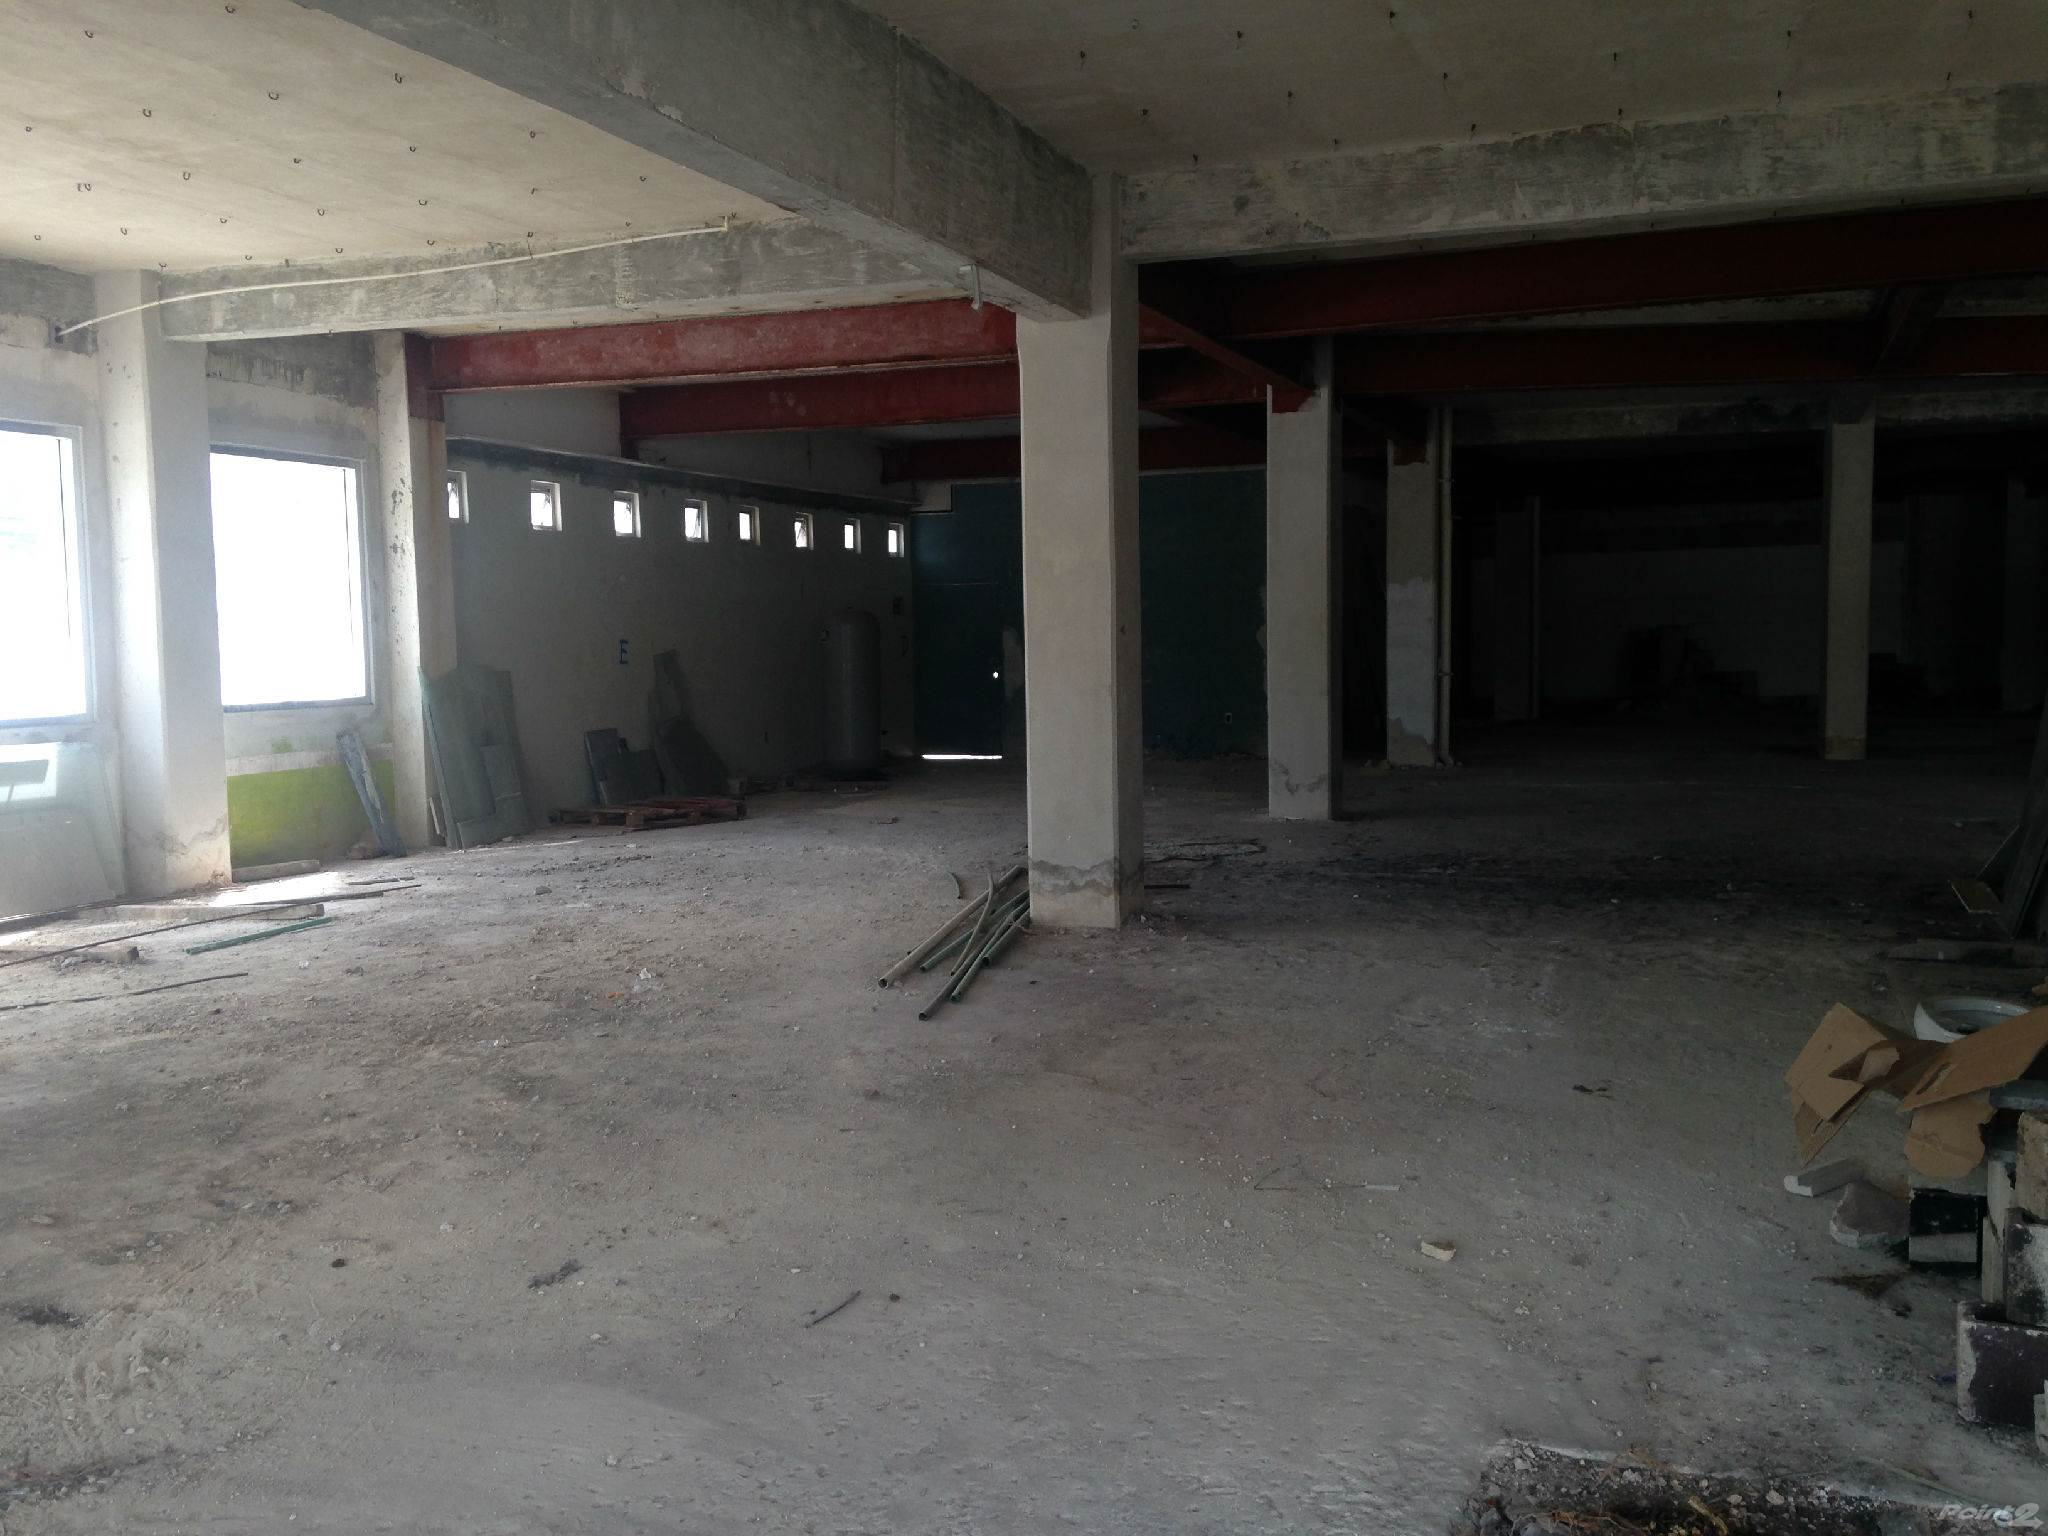 Affitto commerciale in Av. Bonampak, Commercial Location for Rent, Cancun, Quintana Roo ,77500  , Messico